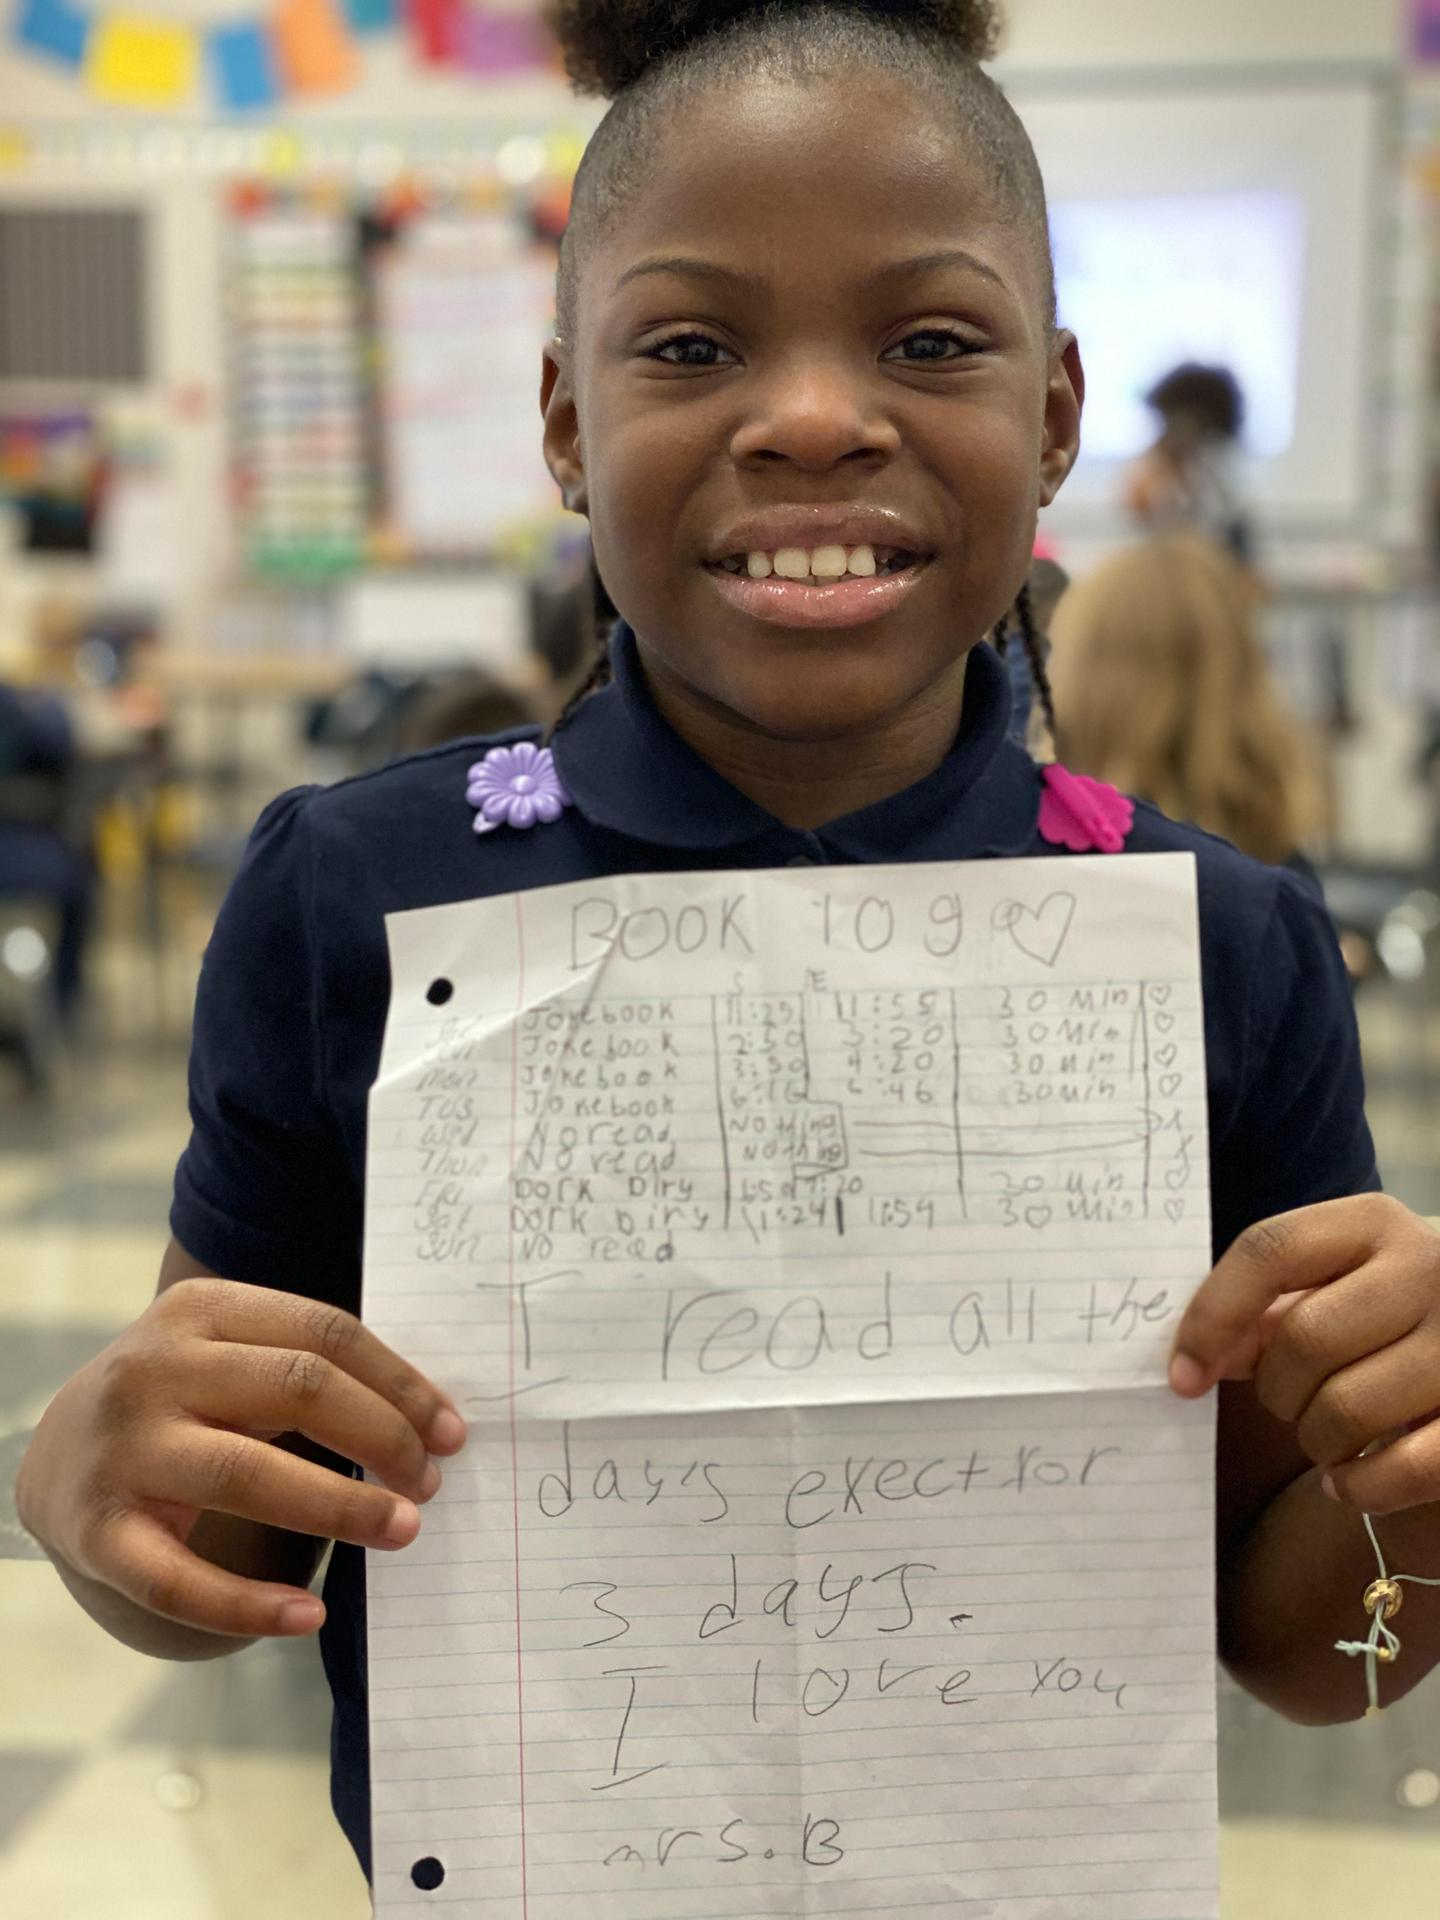 Student writes message to her teacher